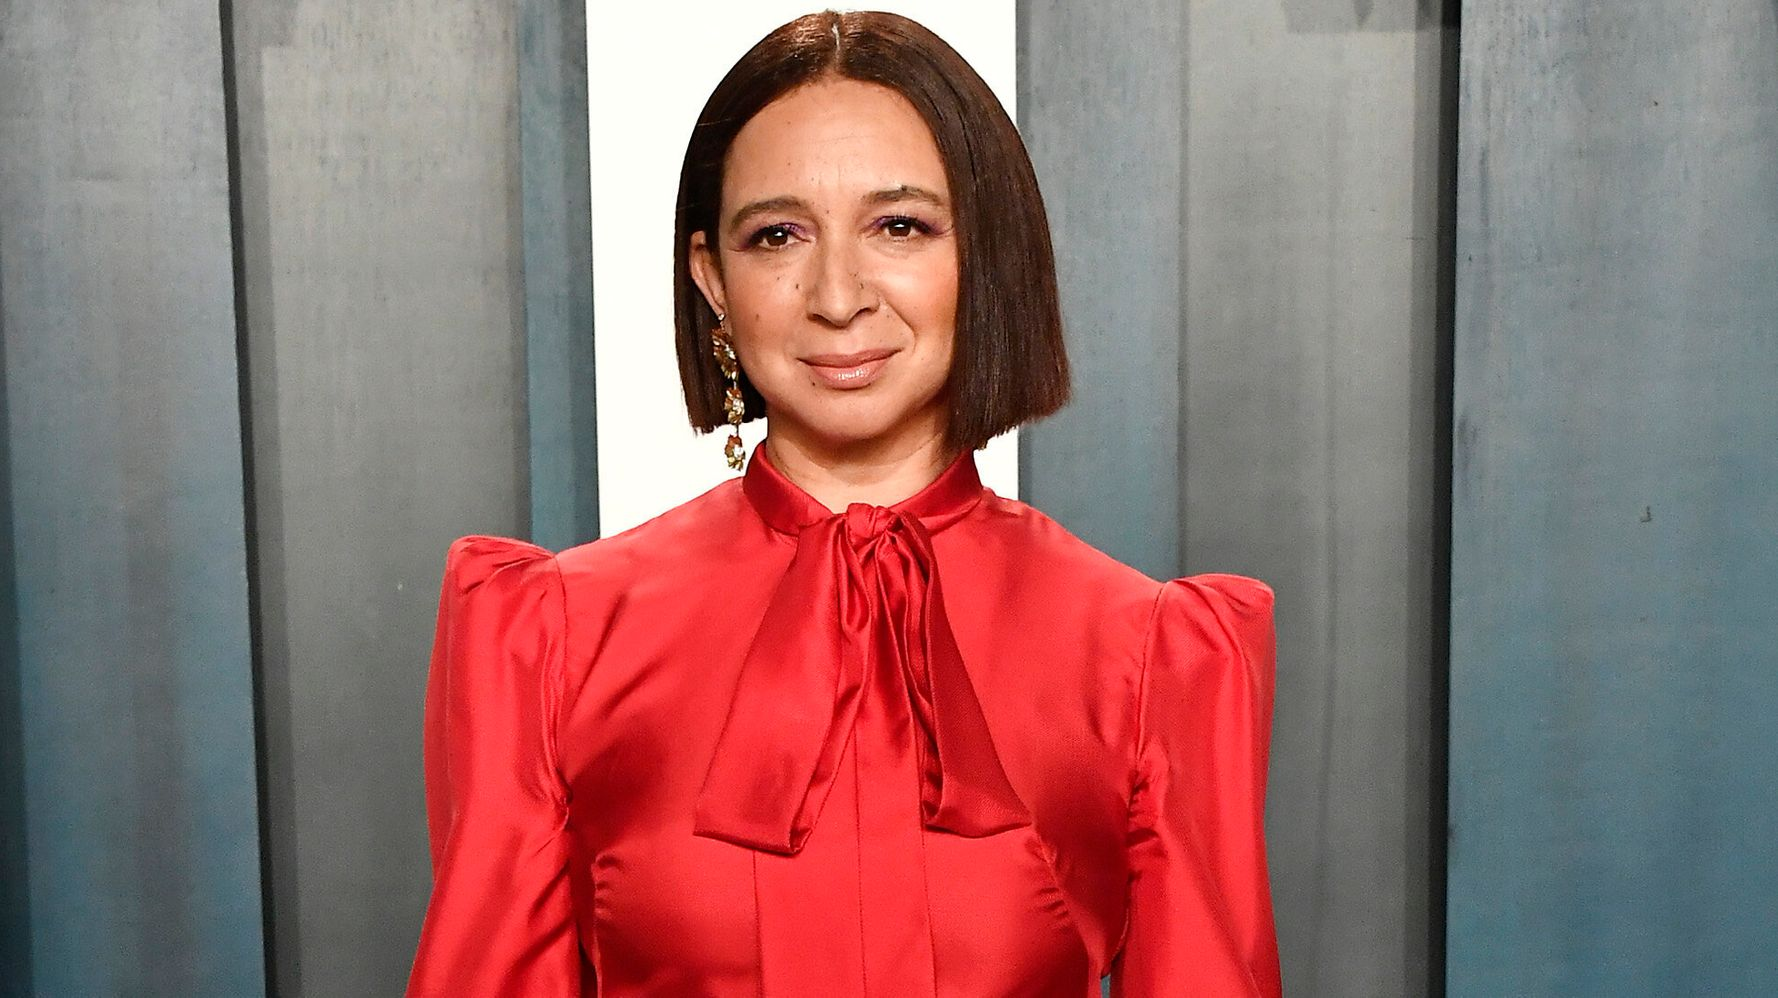 Maya Rudolph On Her 'SNL' Kamala Harris Impression: I Love 'Being Aligned With Her'